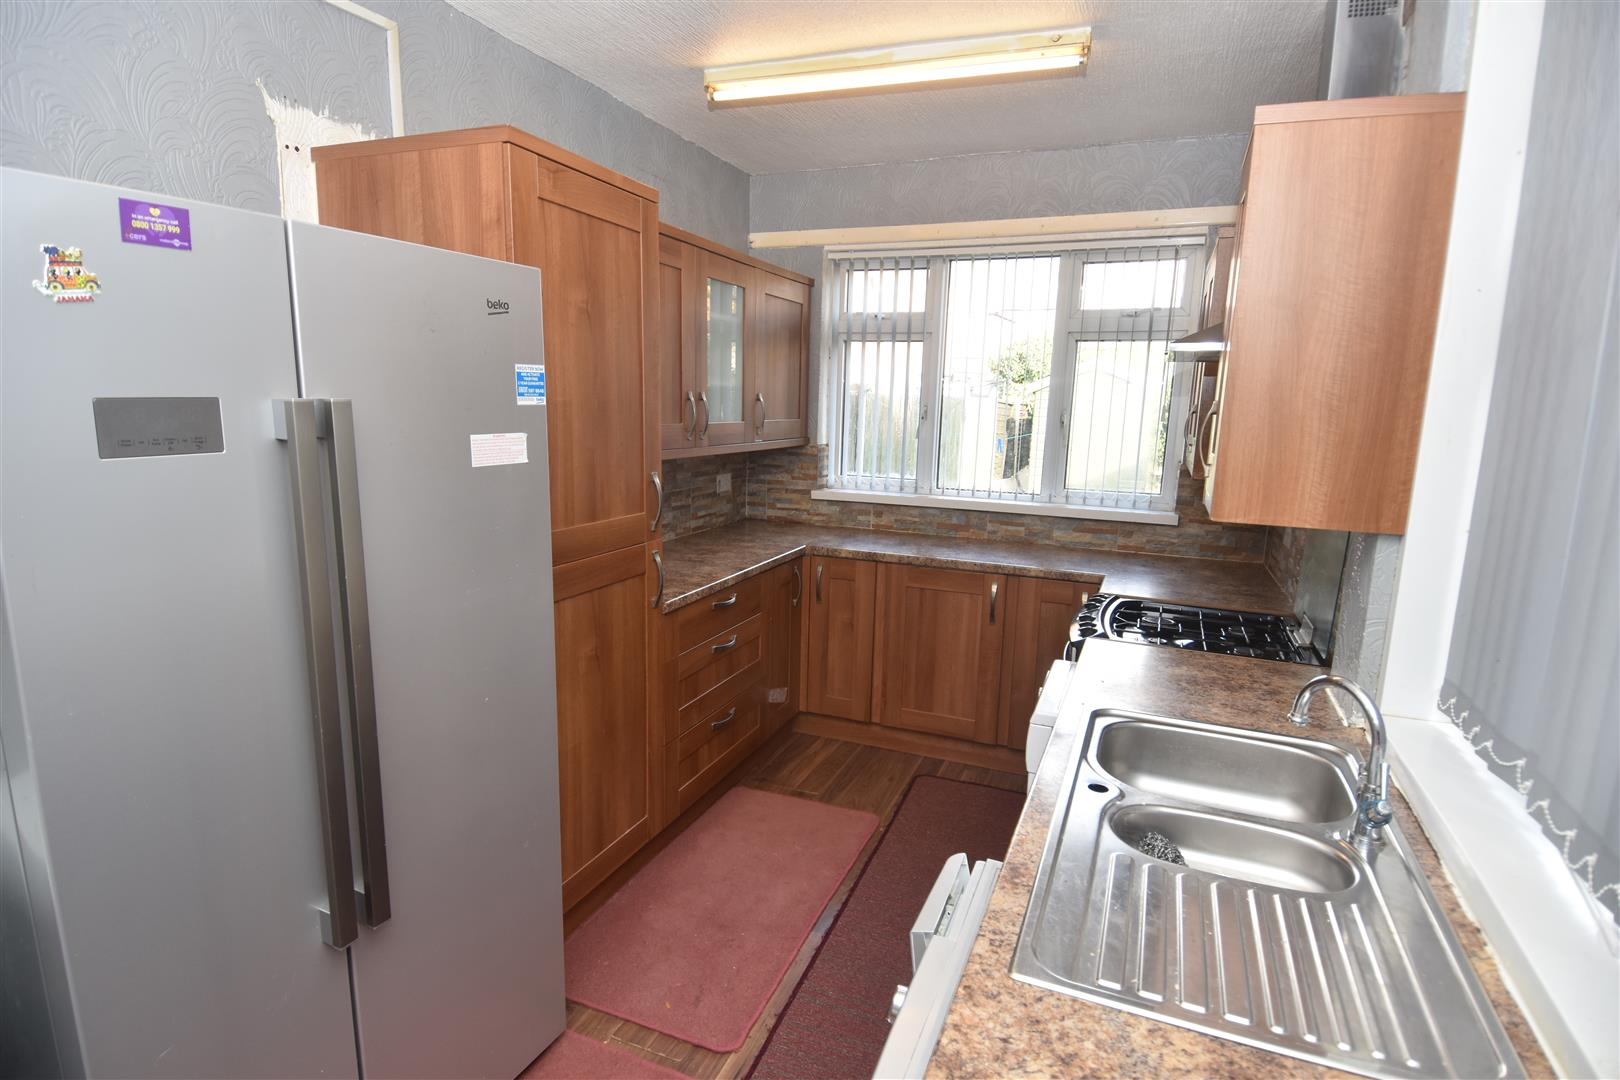 3 bed house for sale in William Cook Road, Ward End, BIRMINGHAM 4